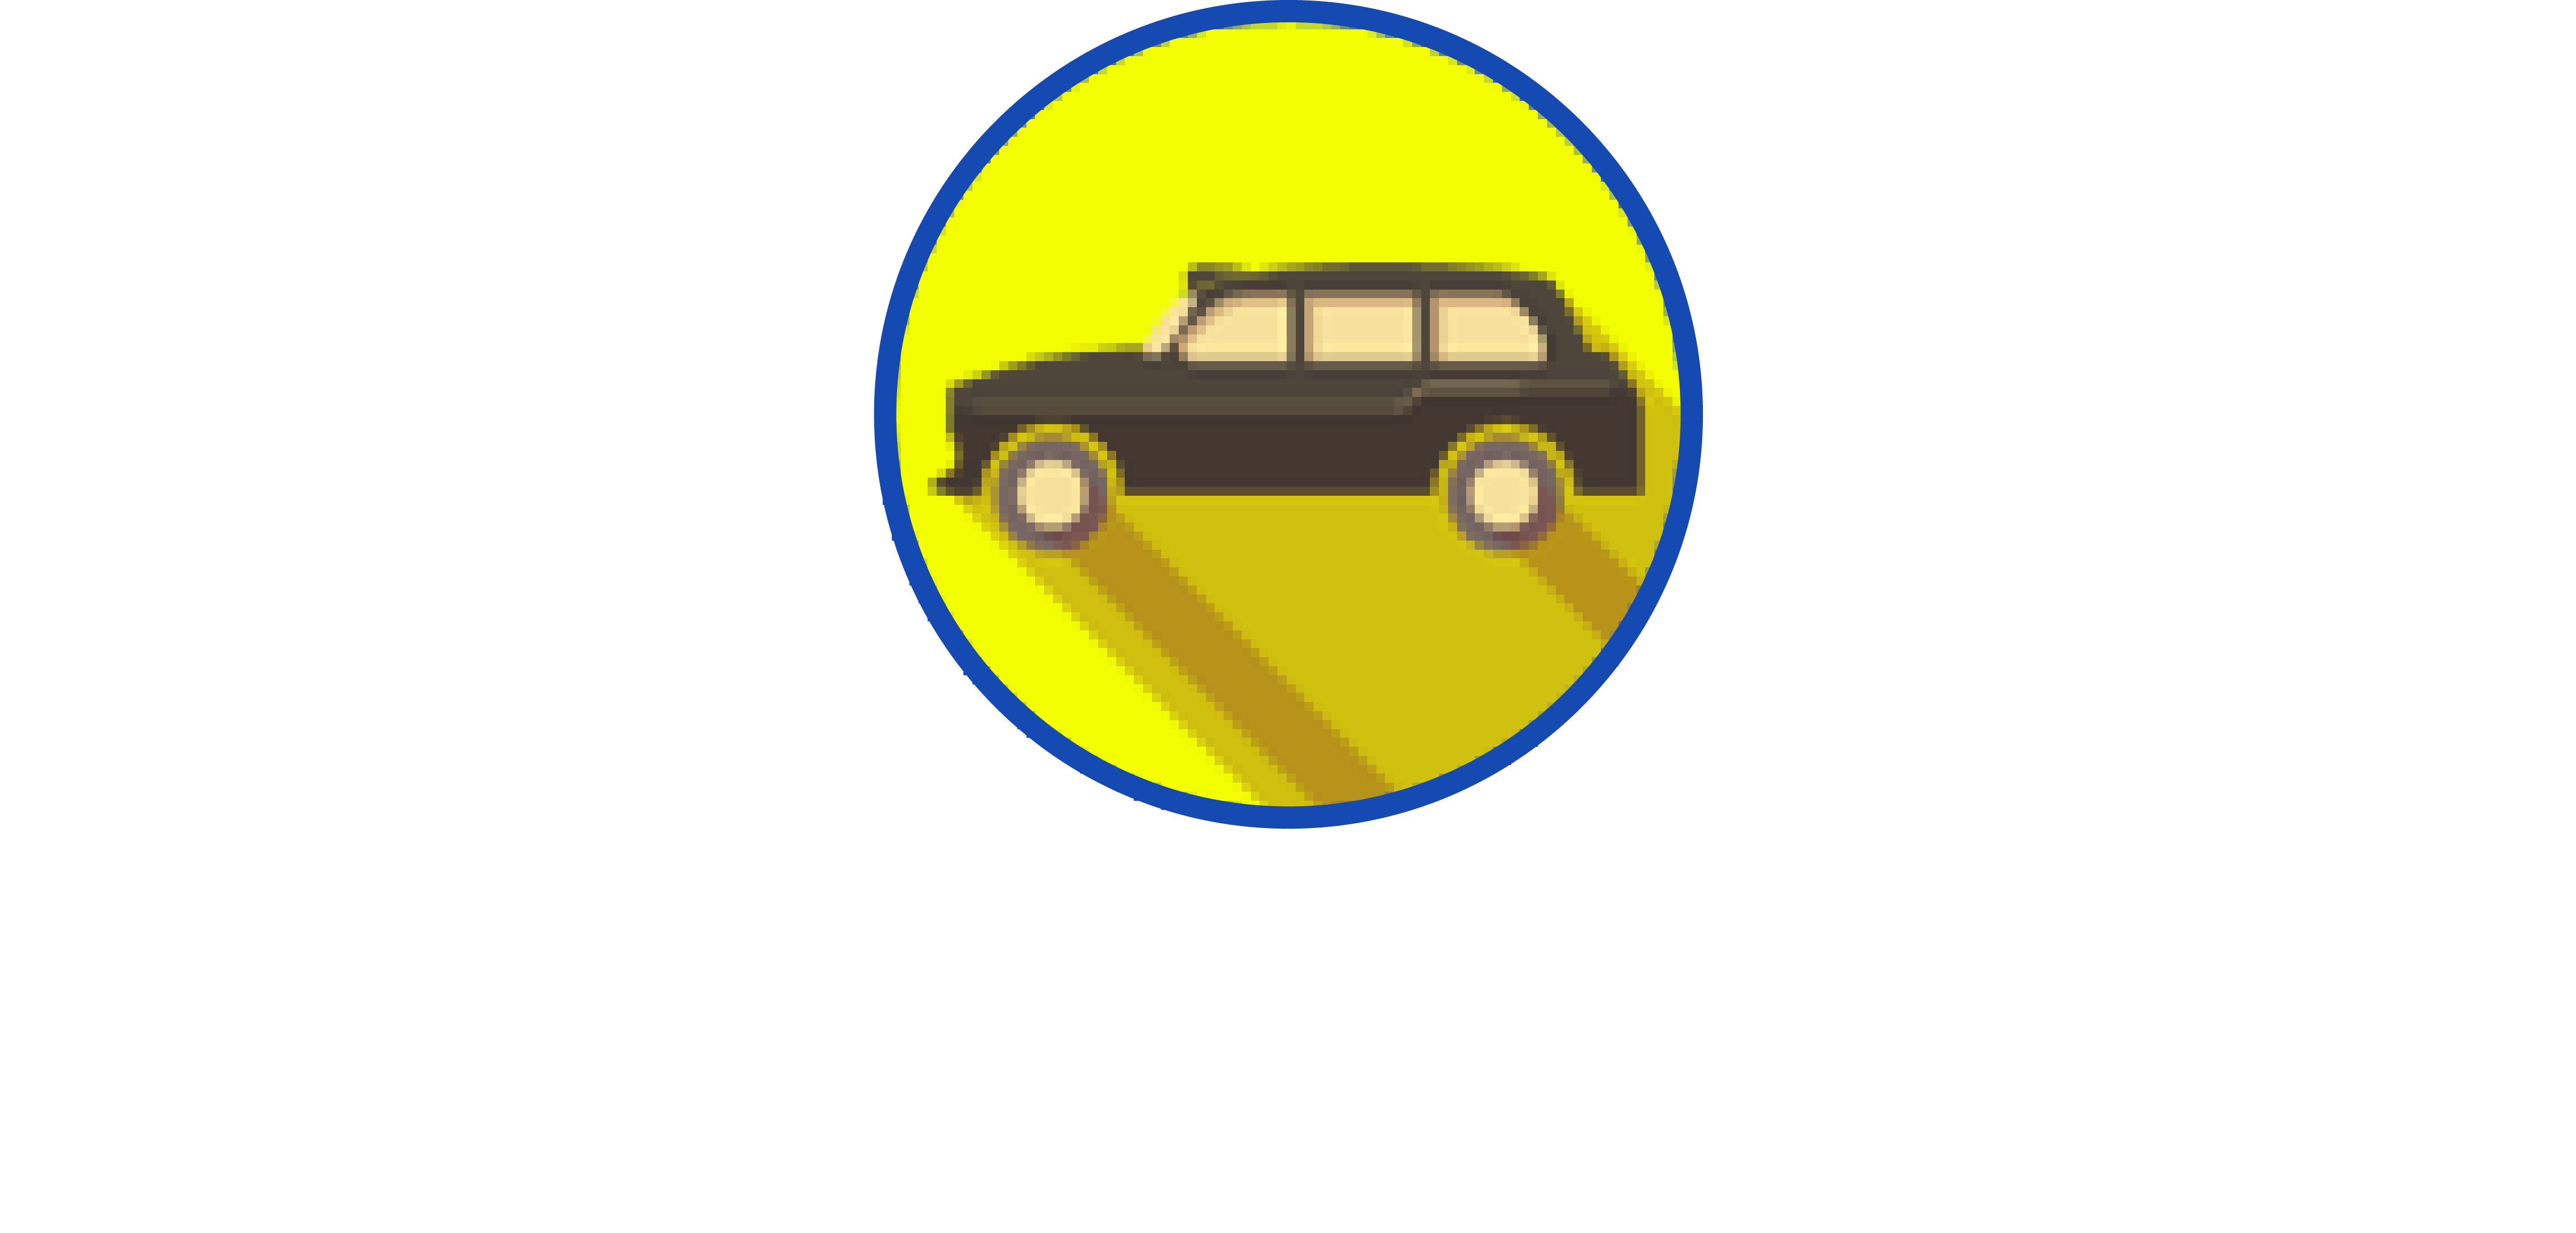 Trusted taxi company | Garrison Cars